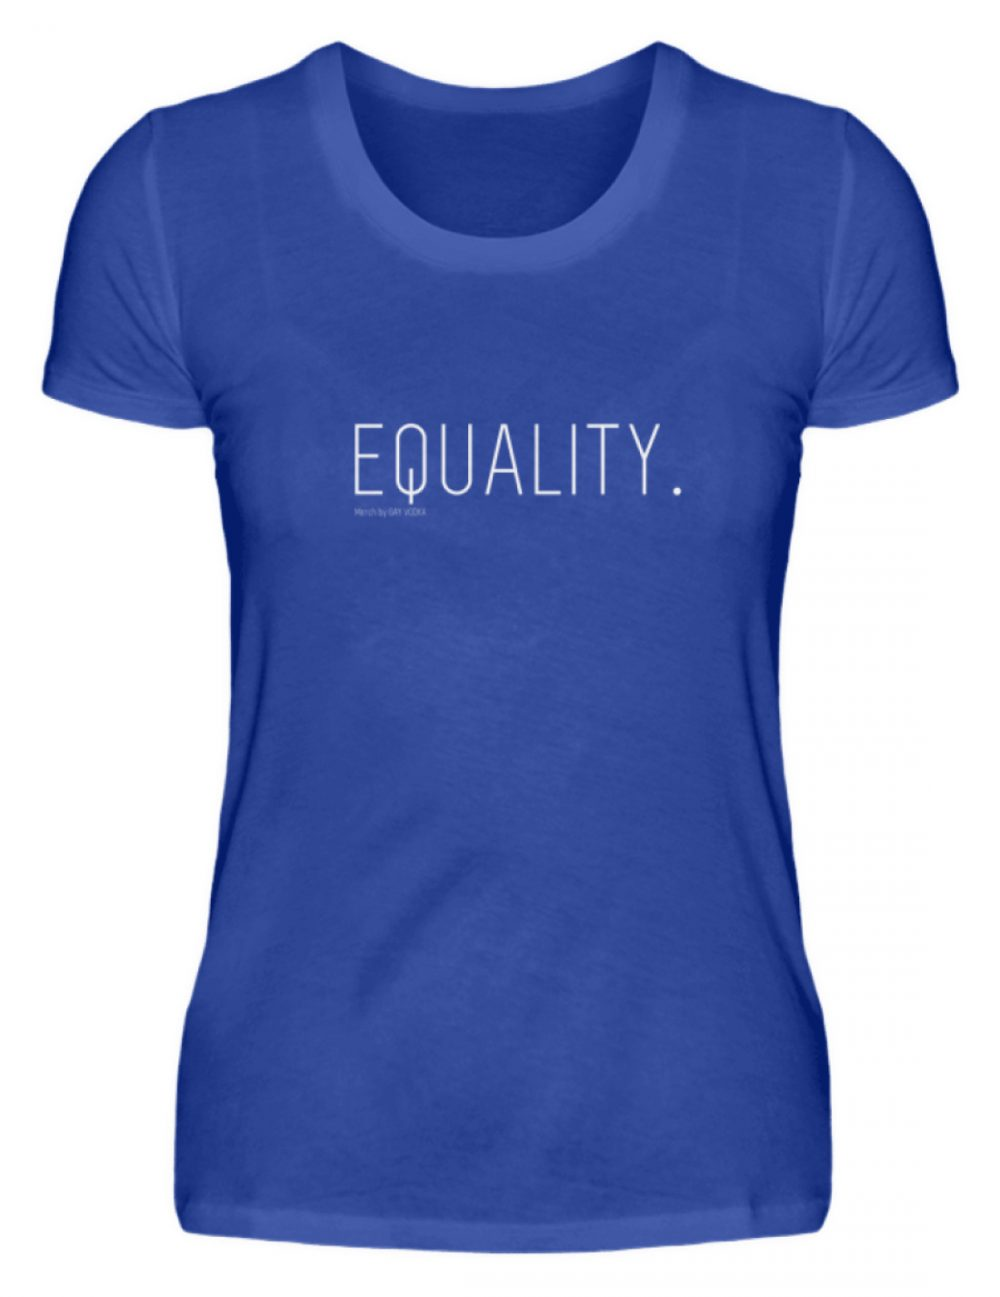 EQUALITY. - Damenshirt-2496